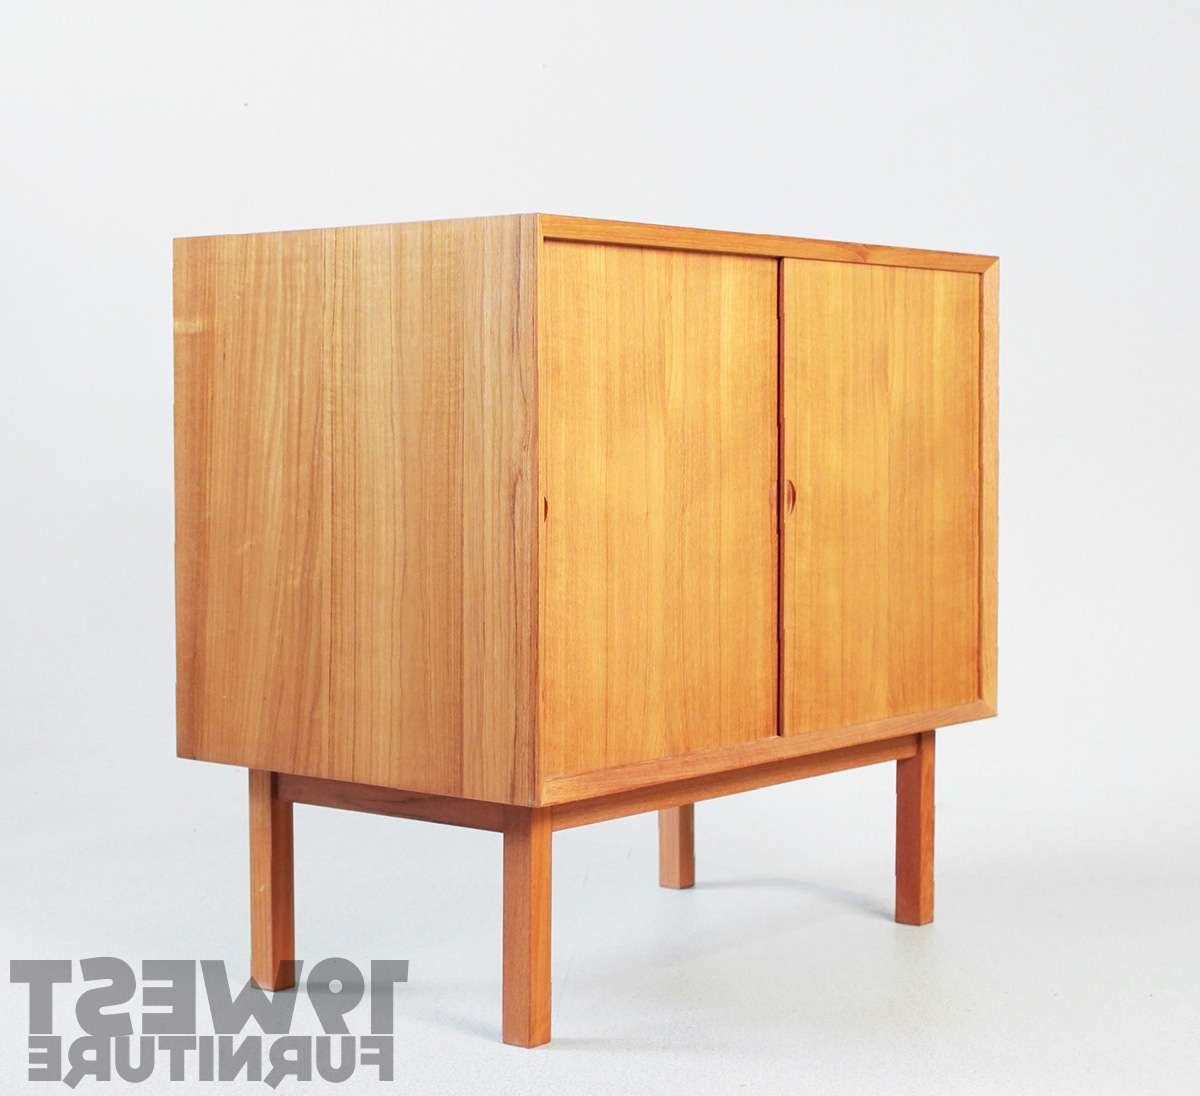 Kleine Sideboards, Poul Cadovius | 19 West With Regard To Kleine Sideboards (View 8 of 20)